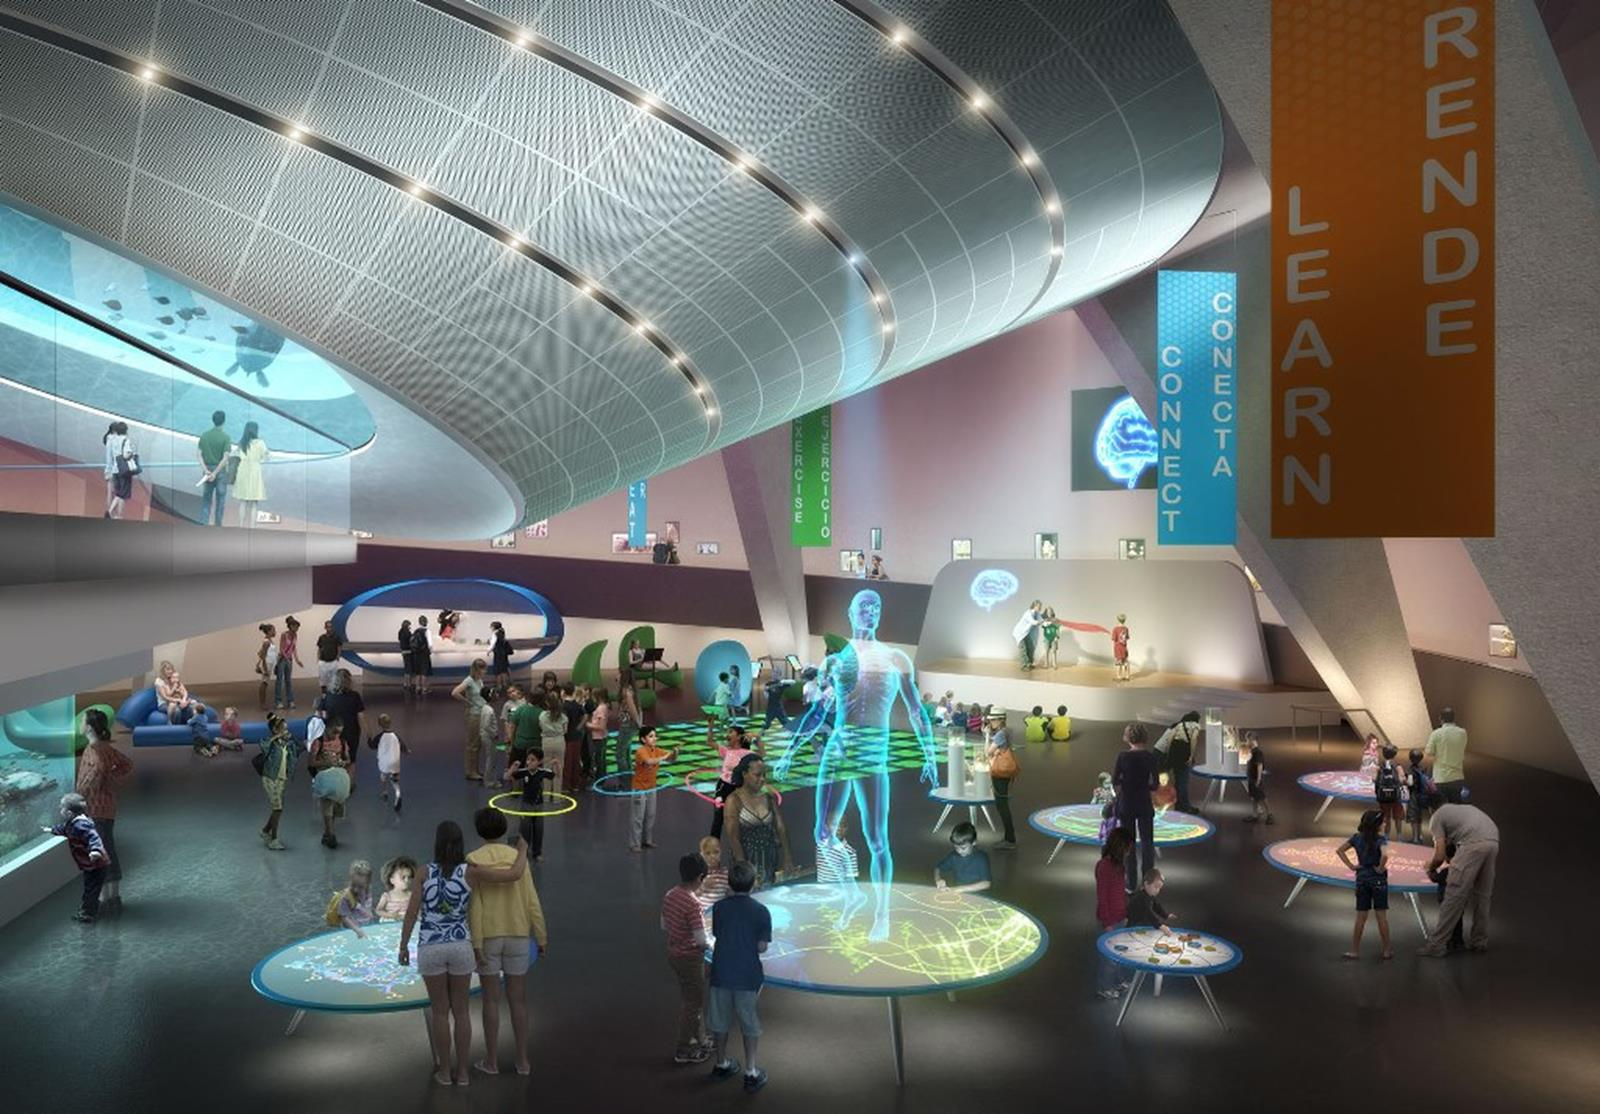 Conceptual Rendering of the Baptist Health People & Science Gallery at Patricia and Phillip Frost Museum of Science. Credit: Patricia and Phillip Frost Museum of Science